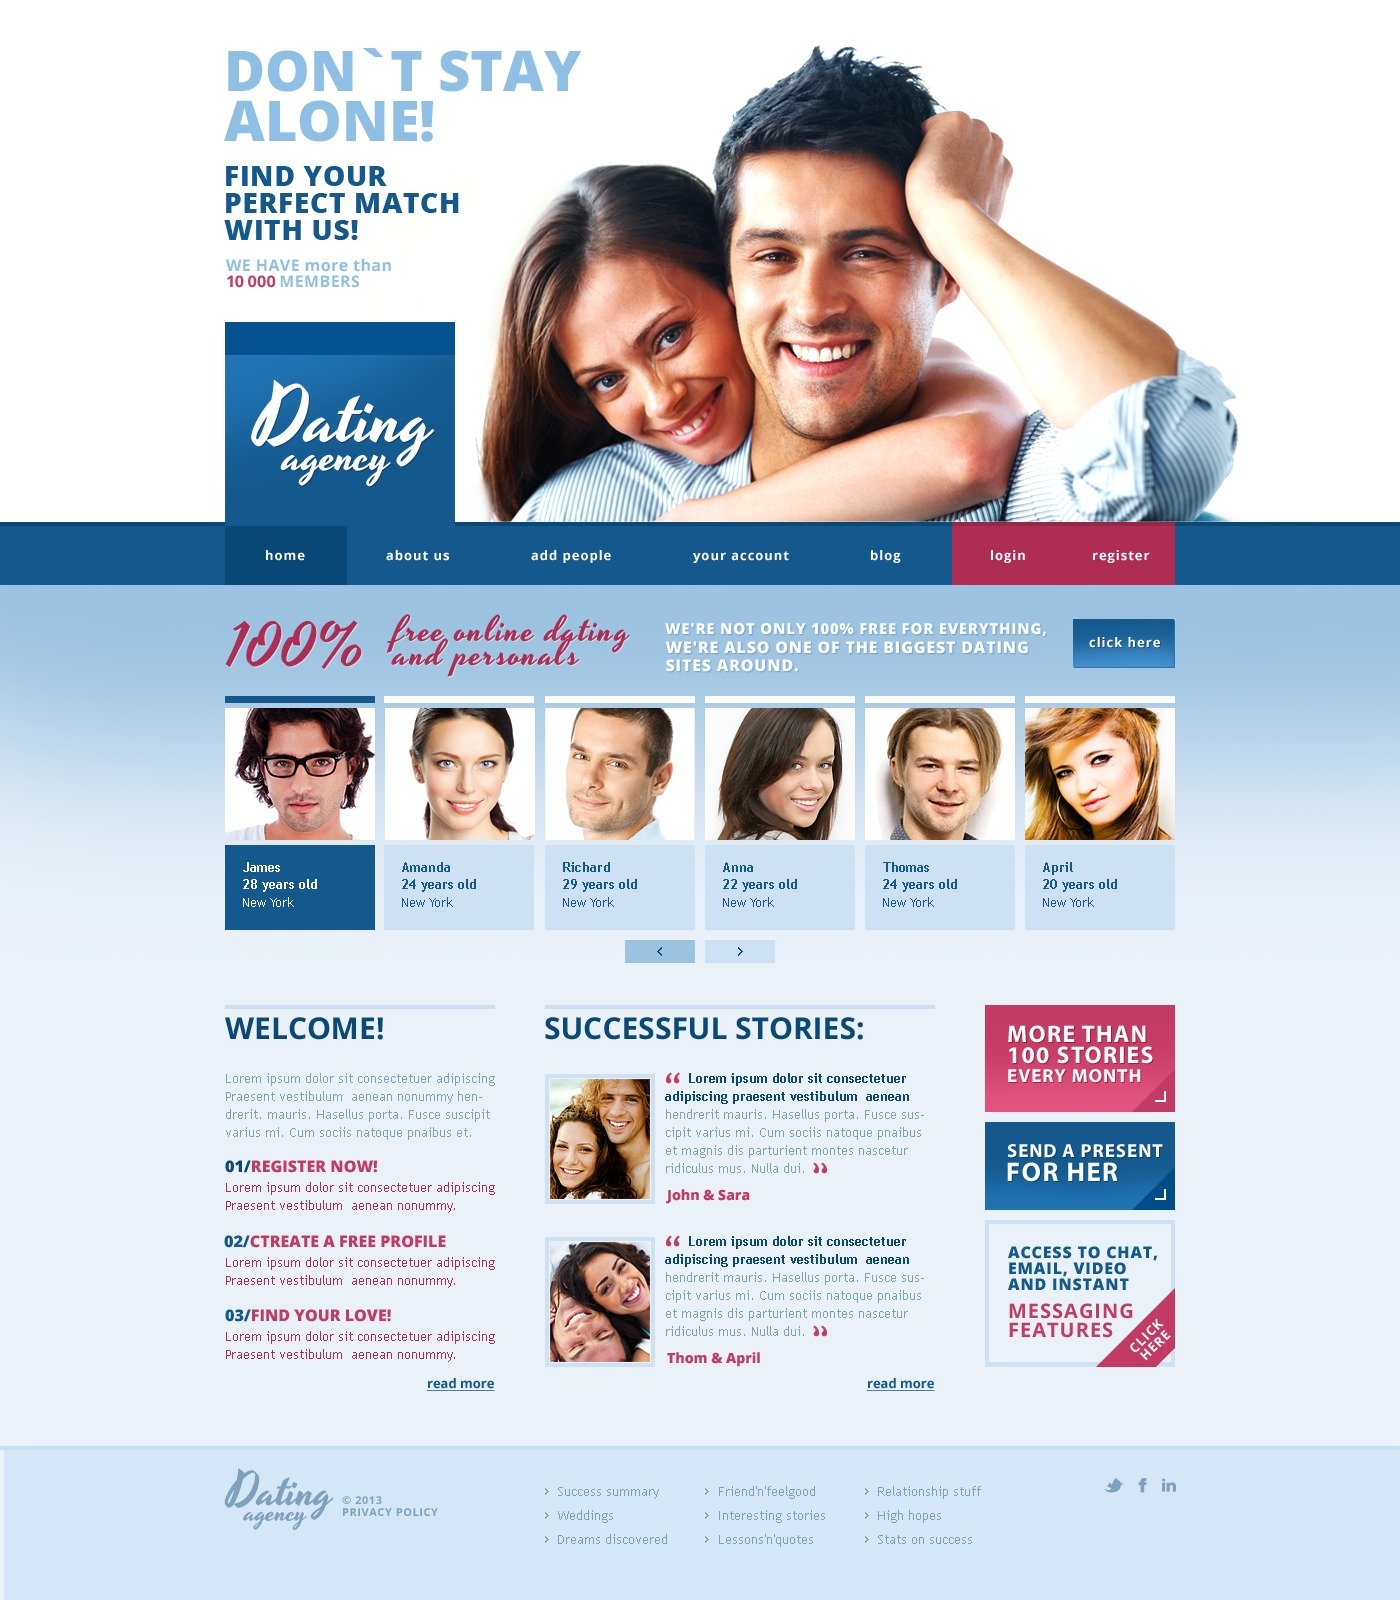 dating.com video downloads free